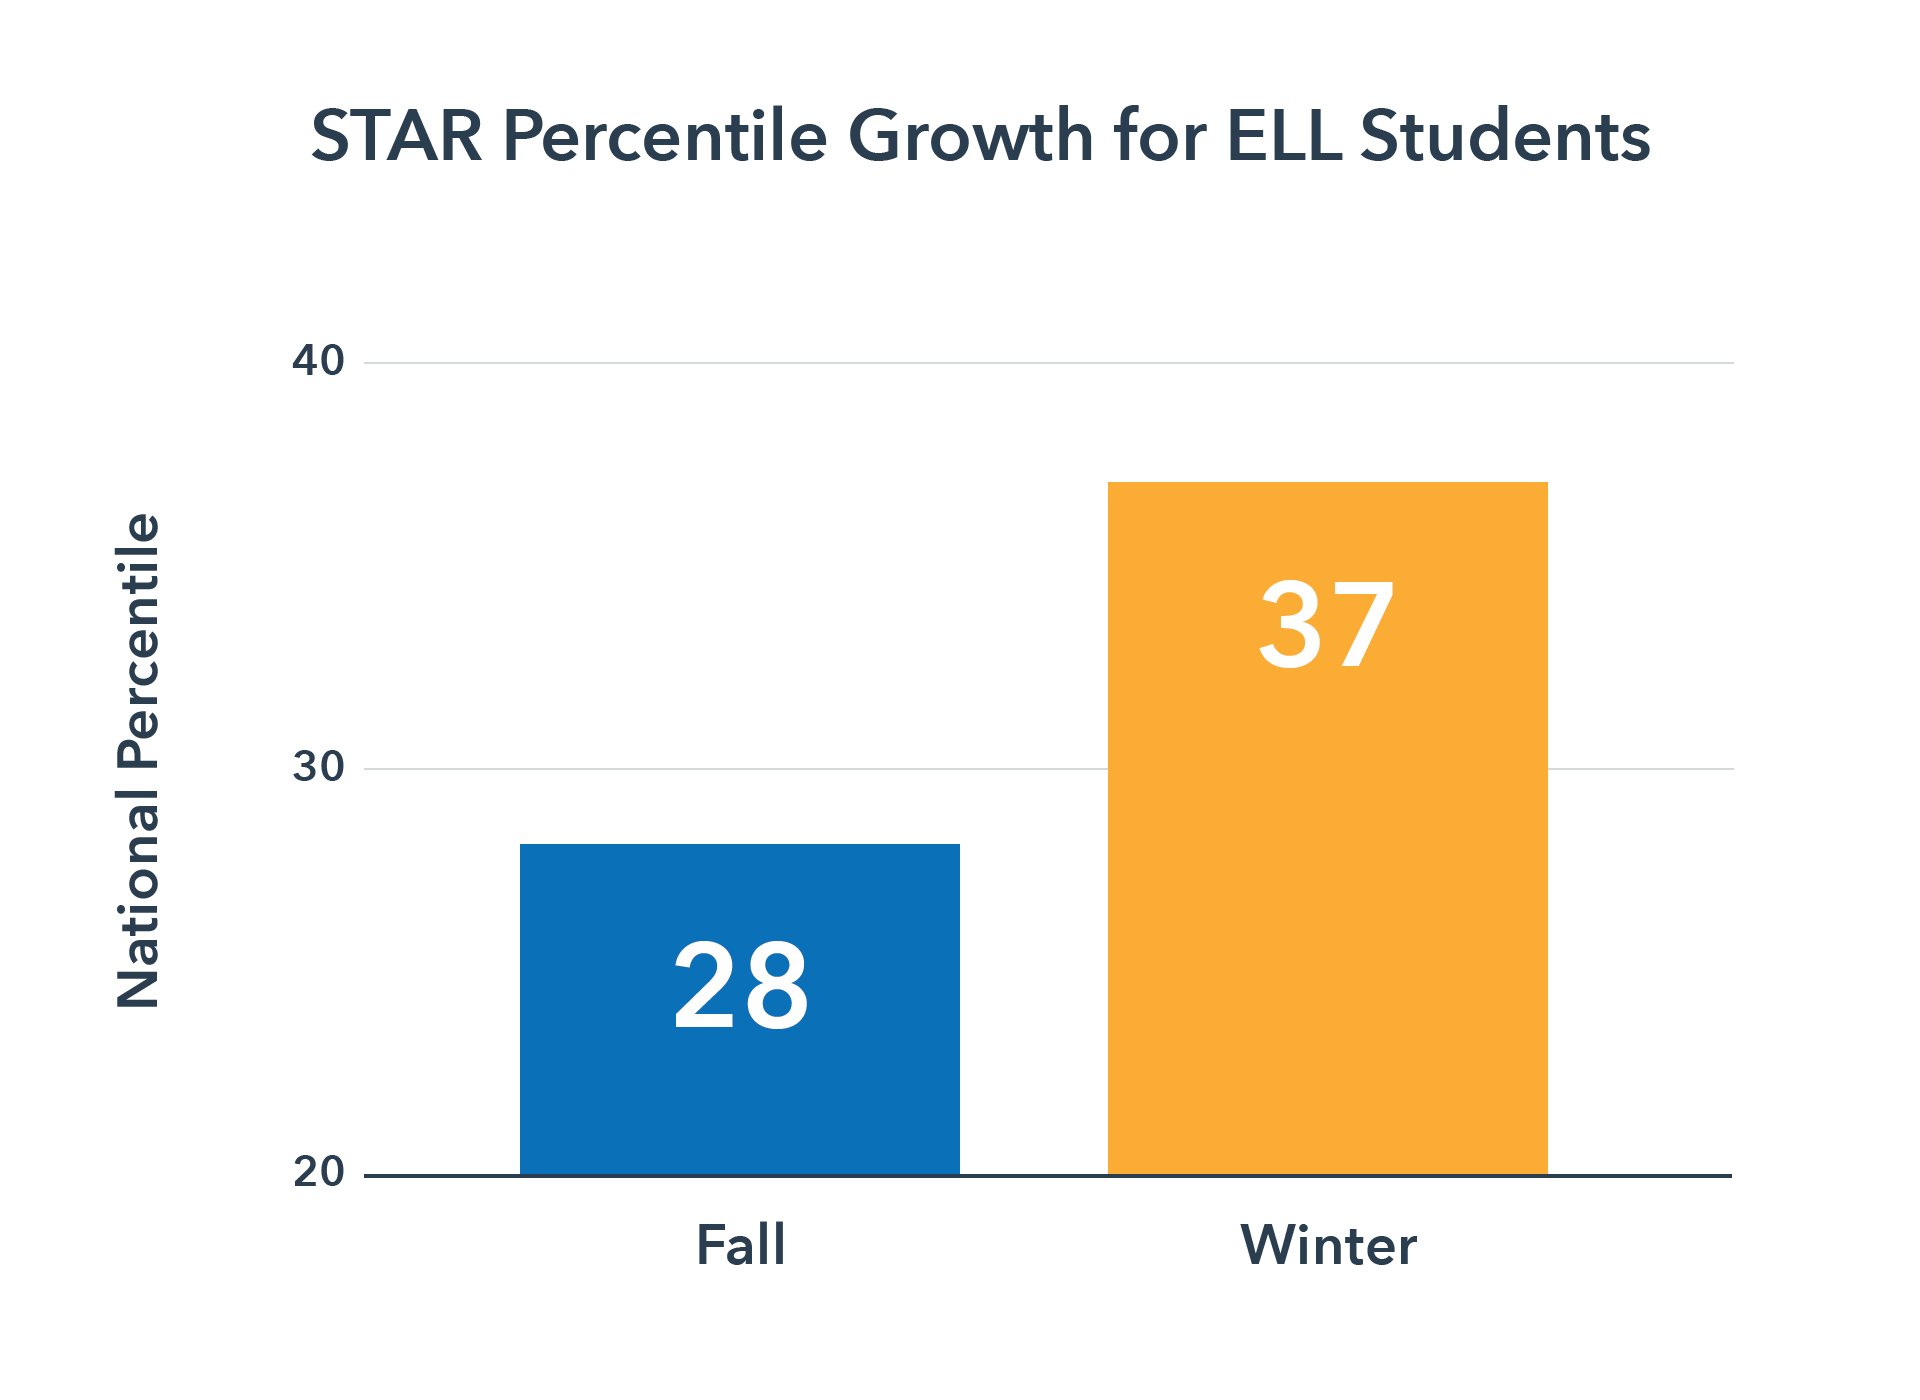 STAR Percentile Growth for English Language Learners